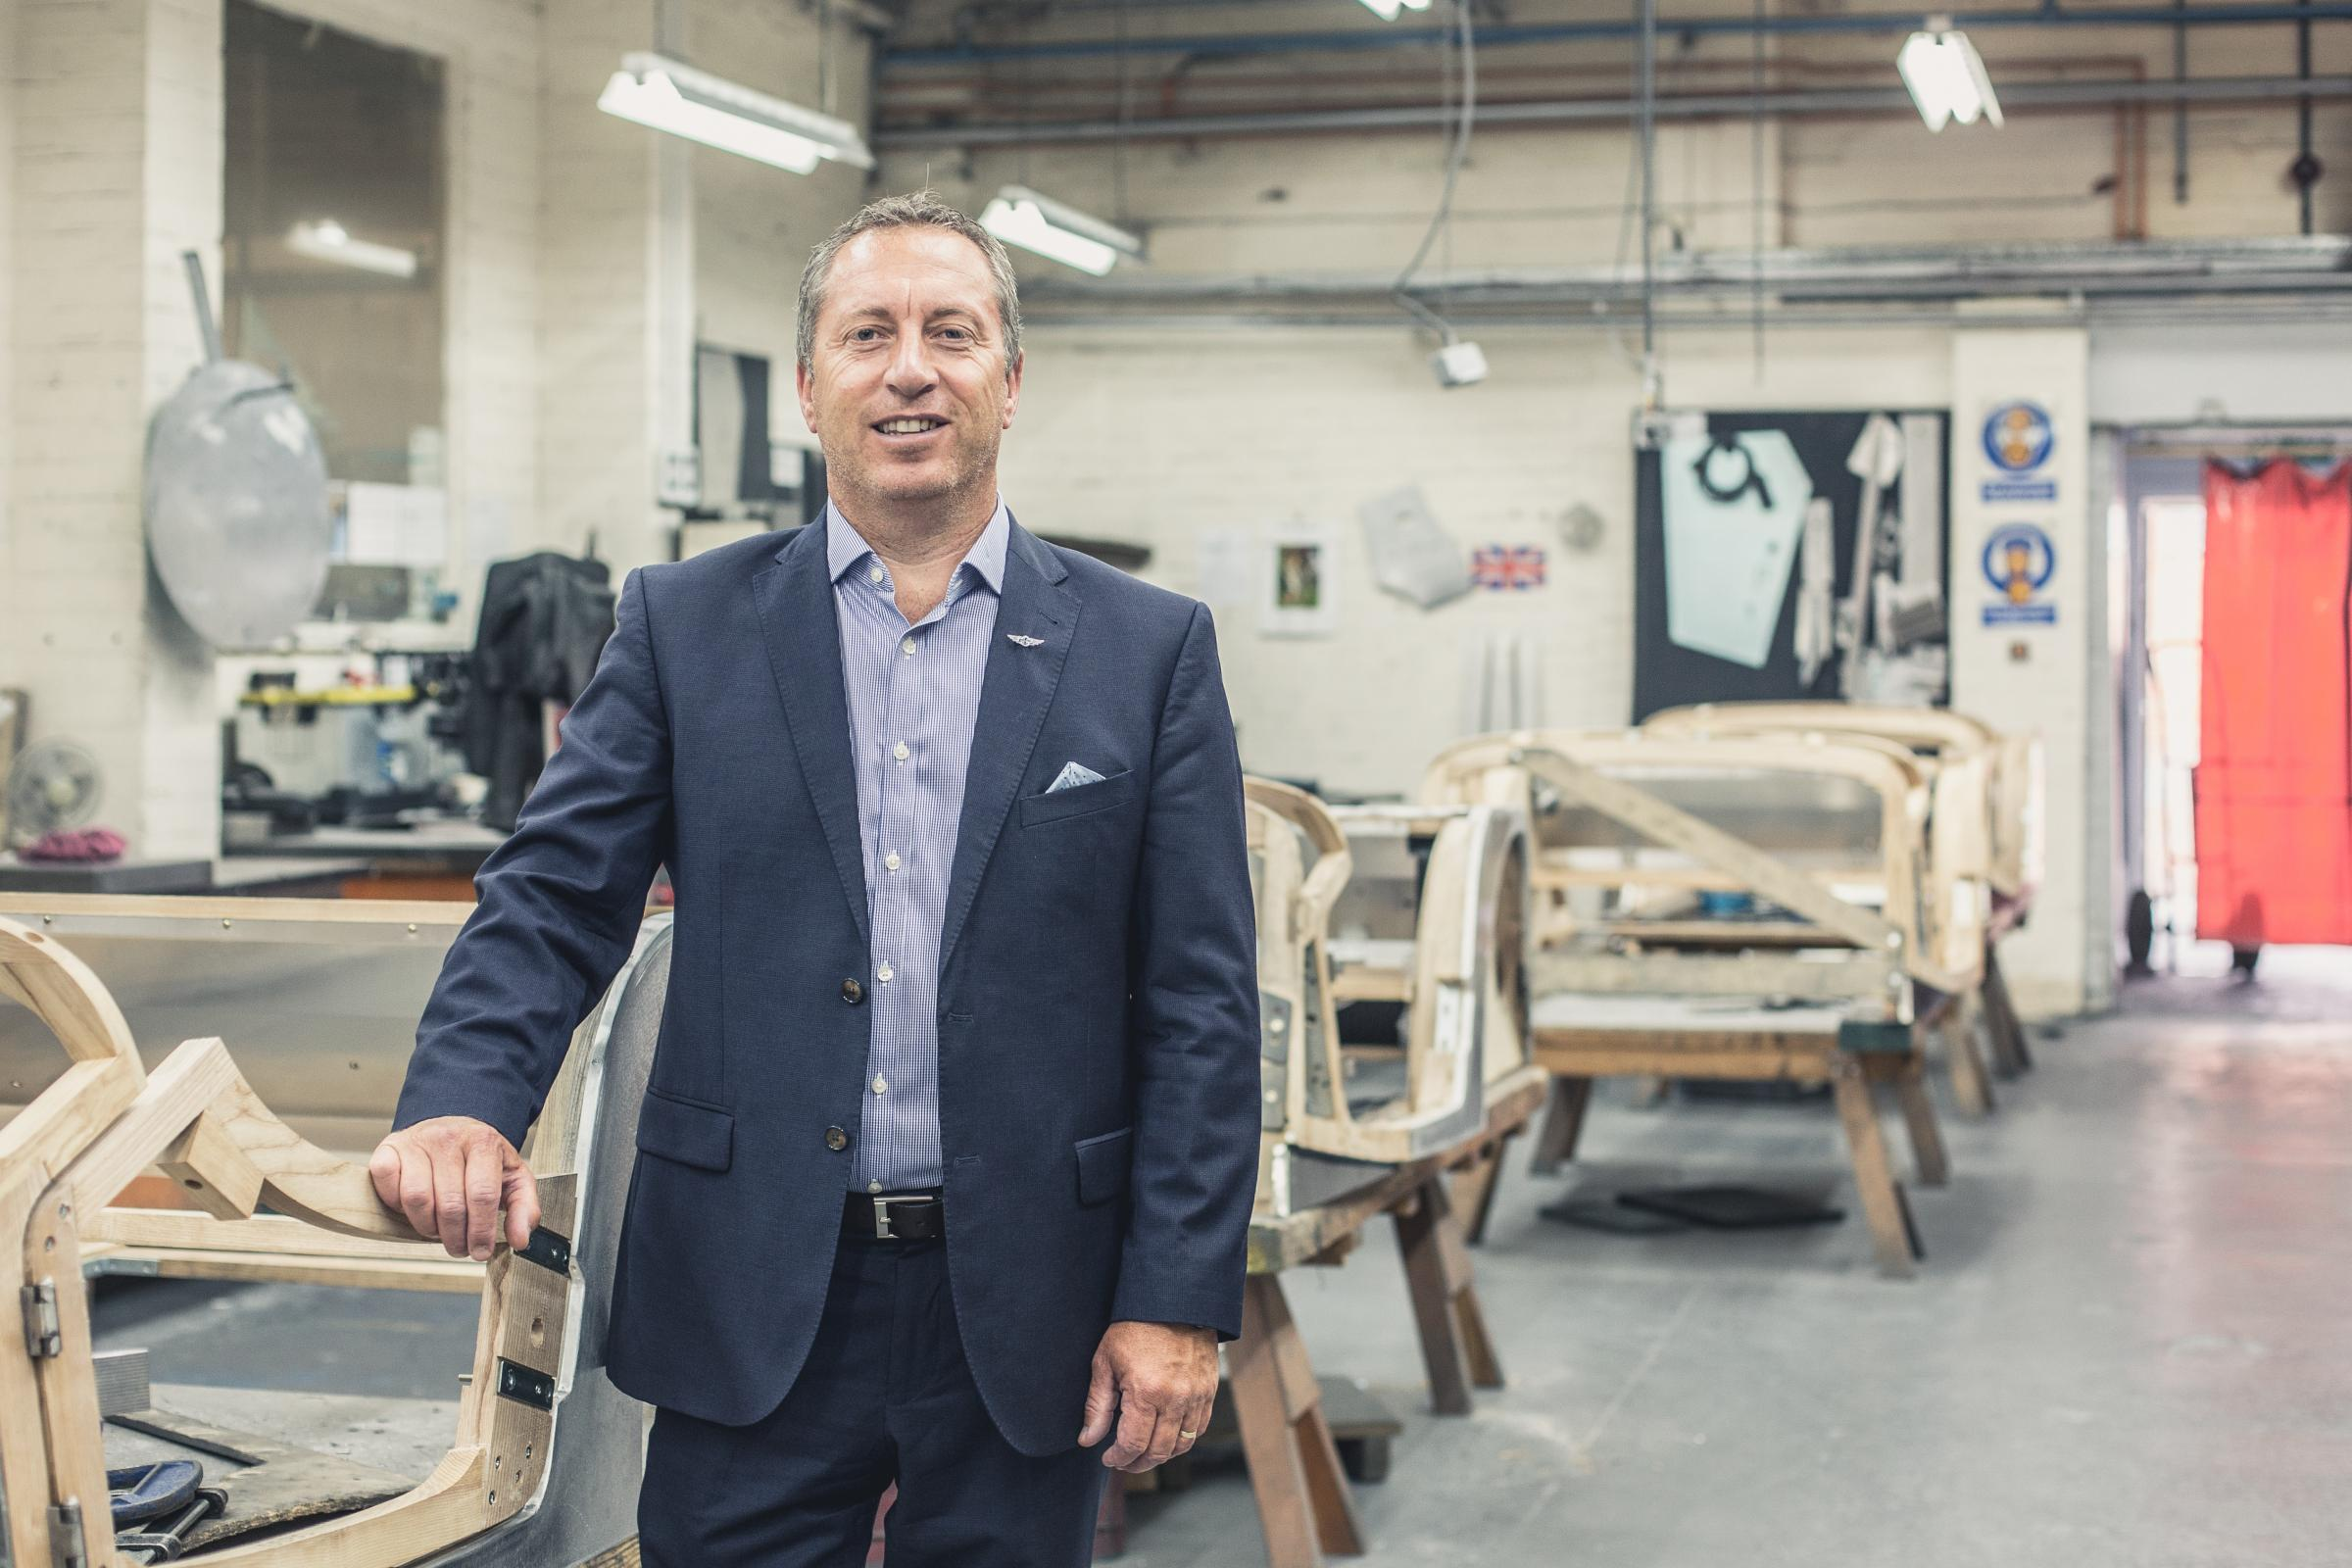 HERITAGE: Steve Morris has been at Morgan Motors for over 30 years